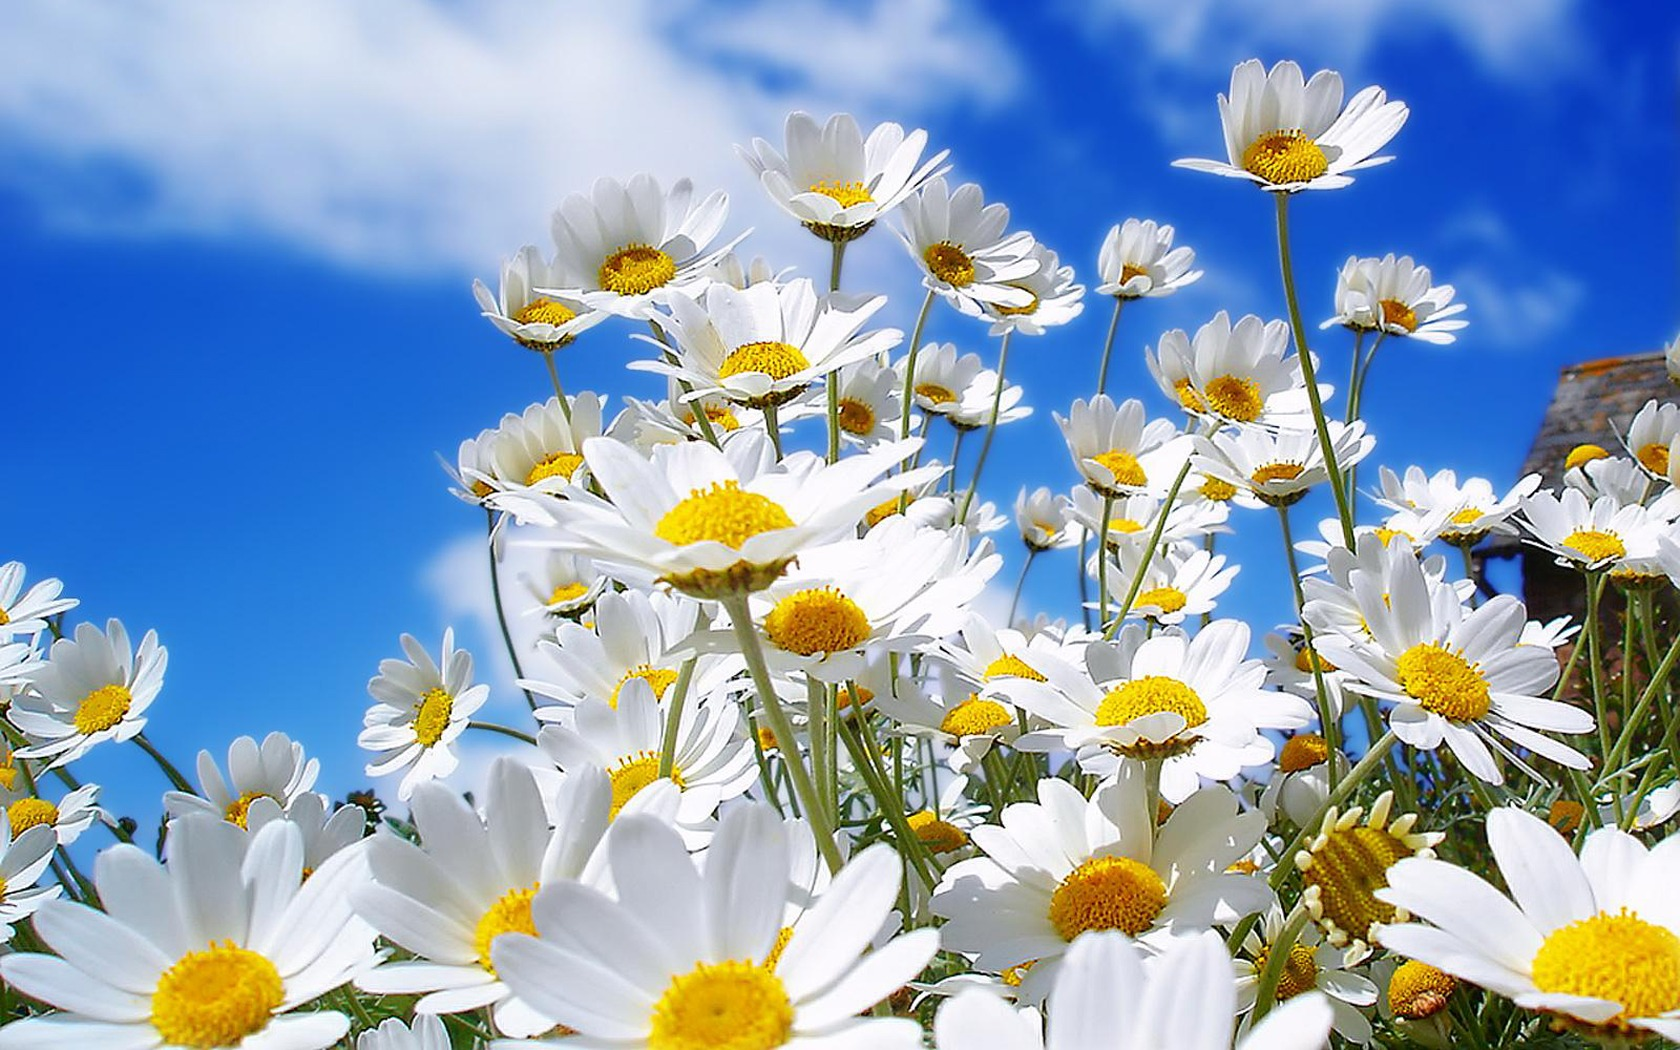 spring daisies wallpaper flowers nature wallpapers in jpg format for